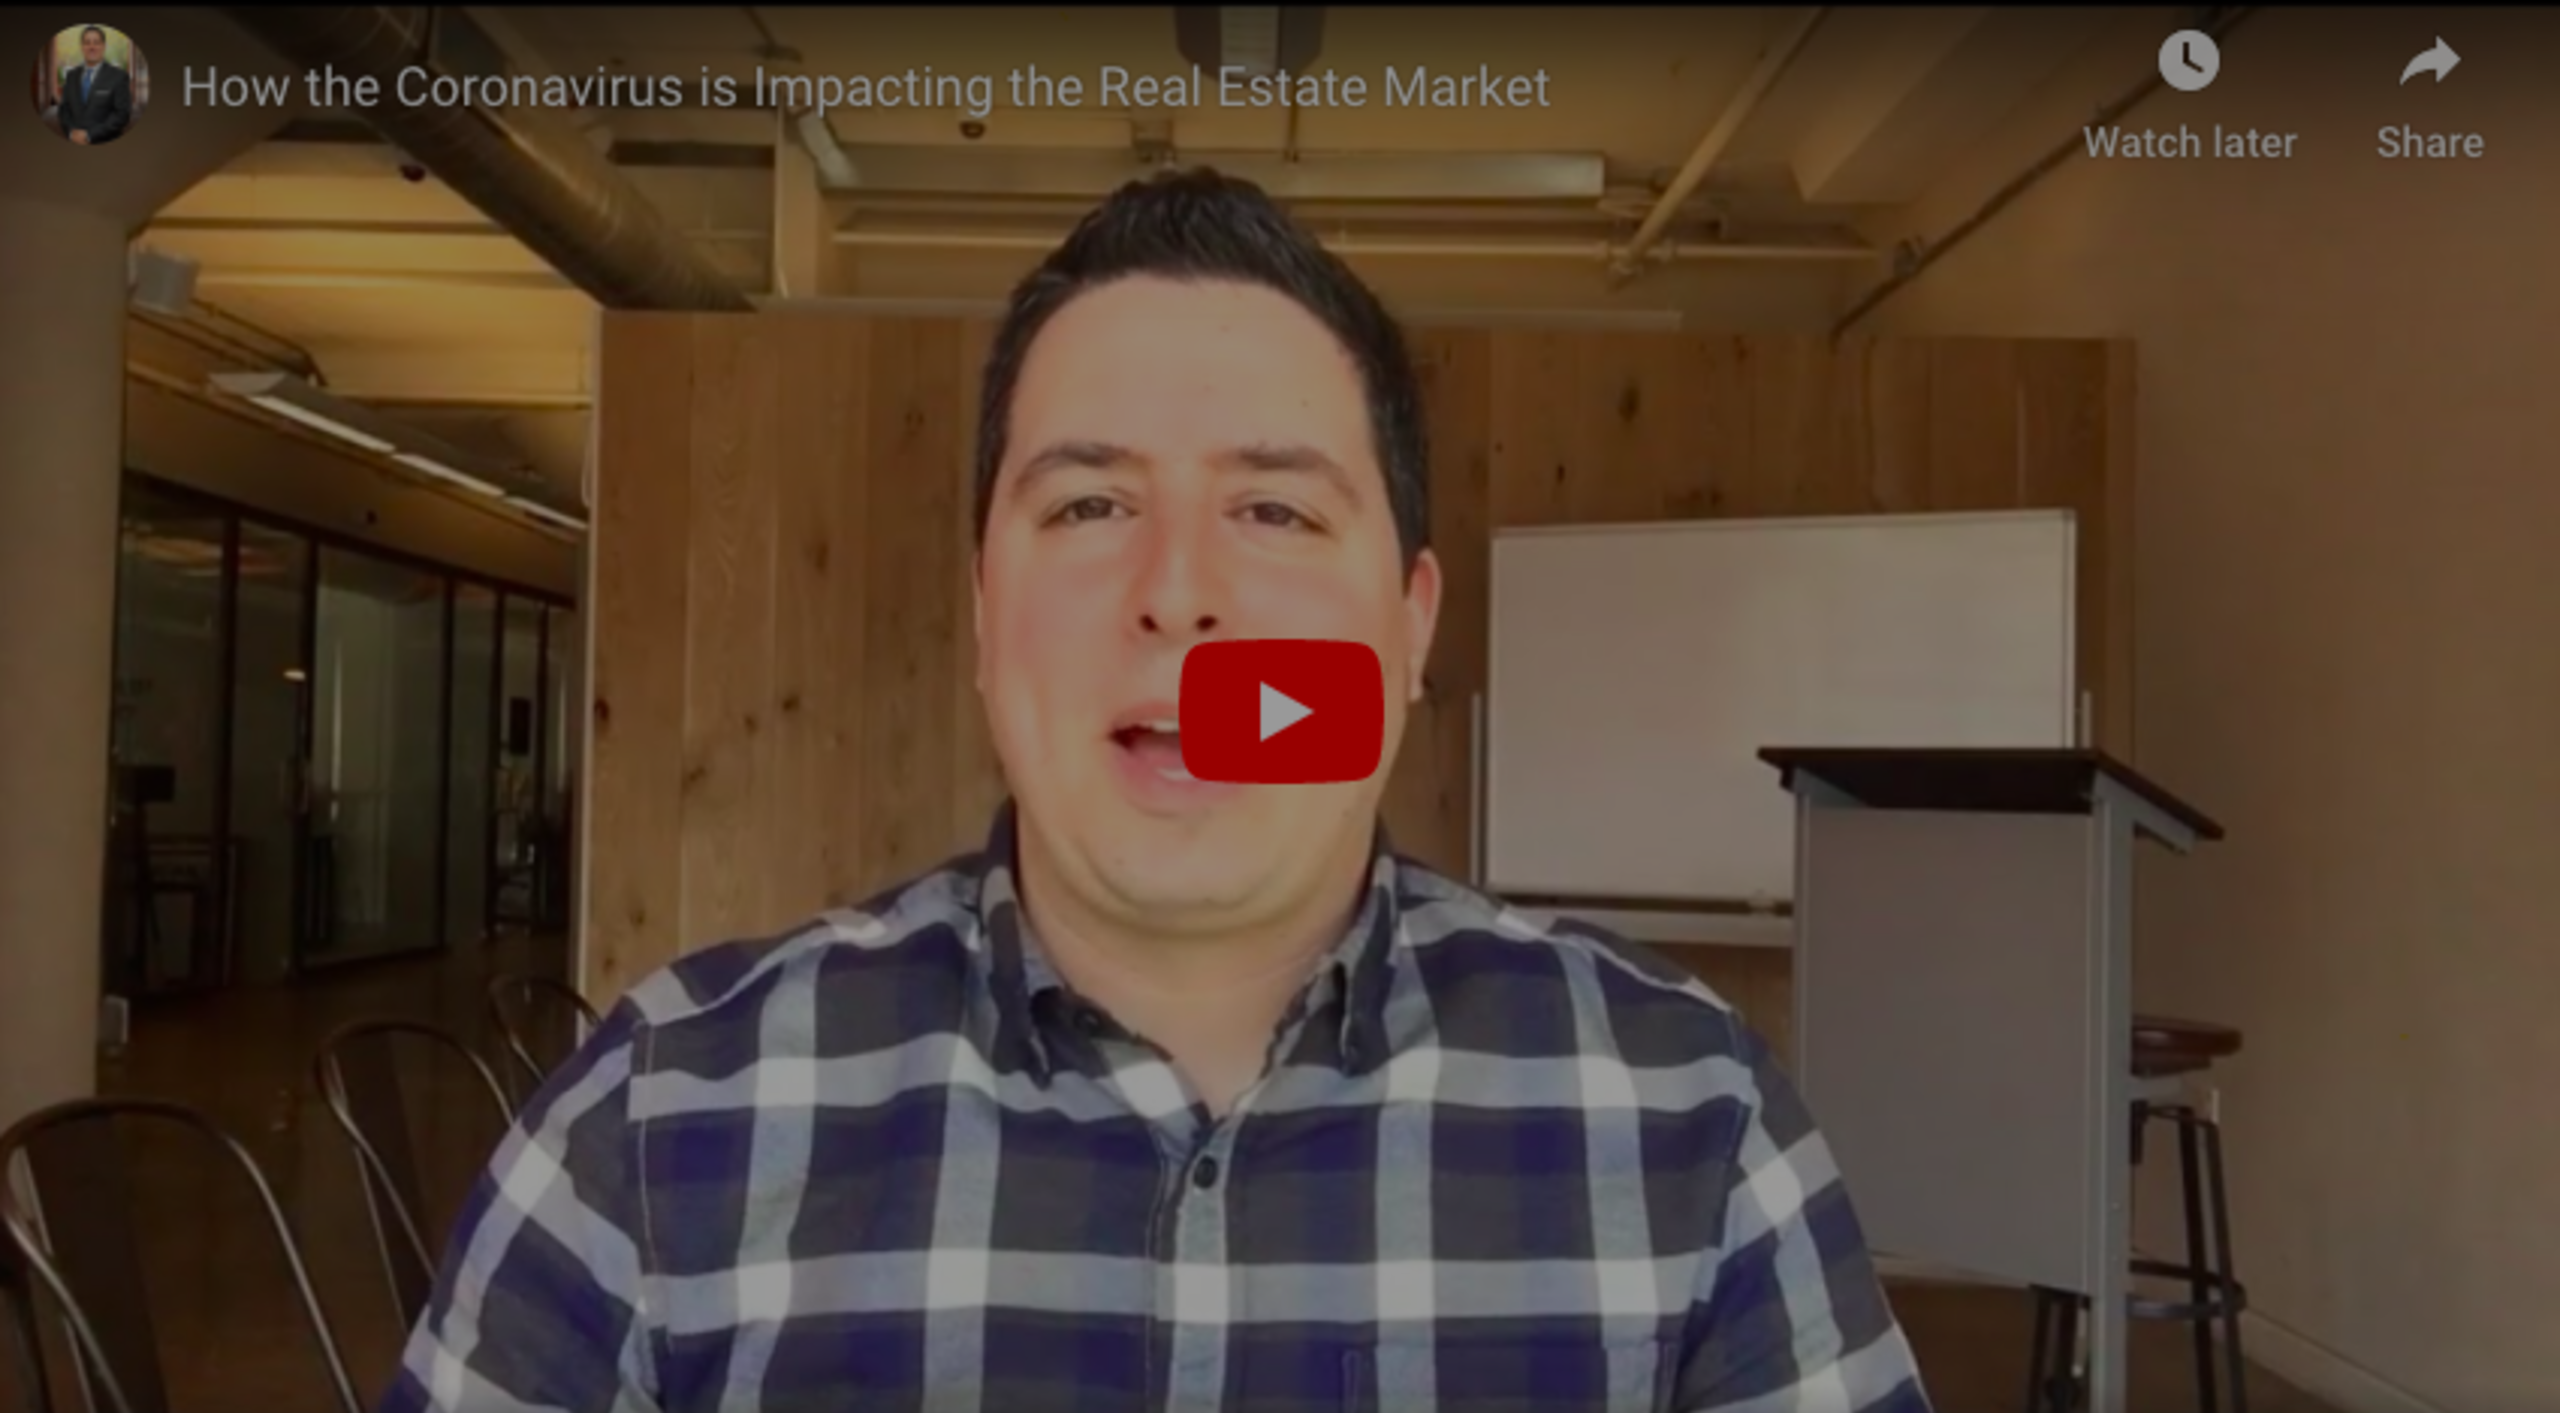 Bryan's Take on The Coronavirus & Its Impact on Real Estate